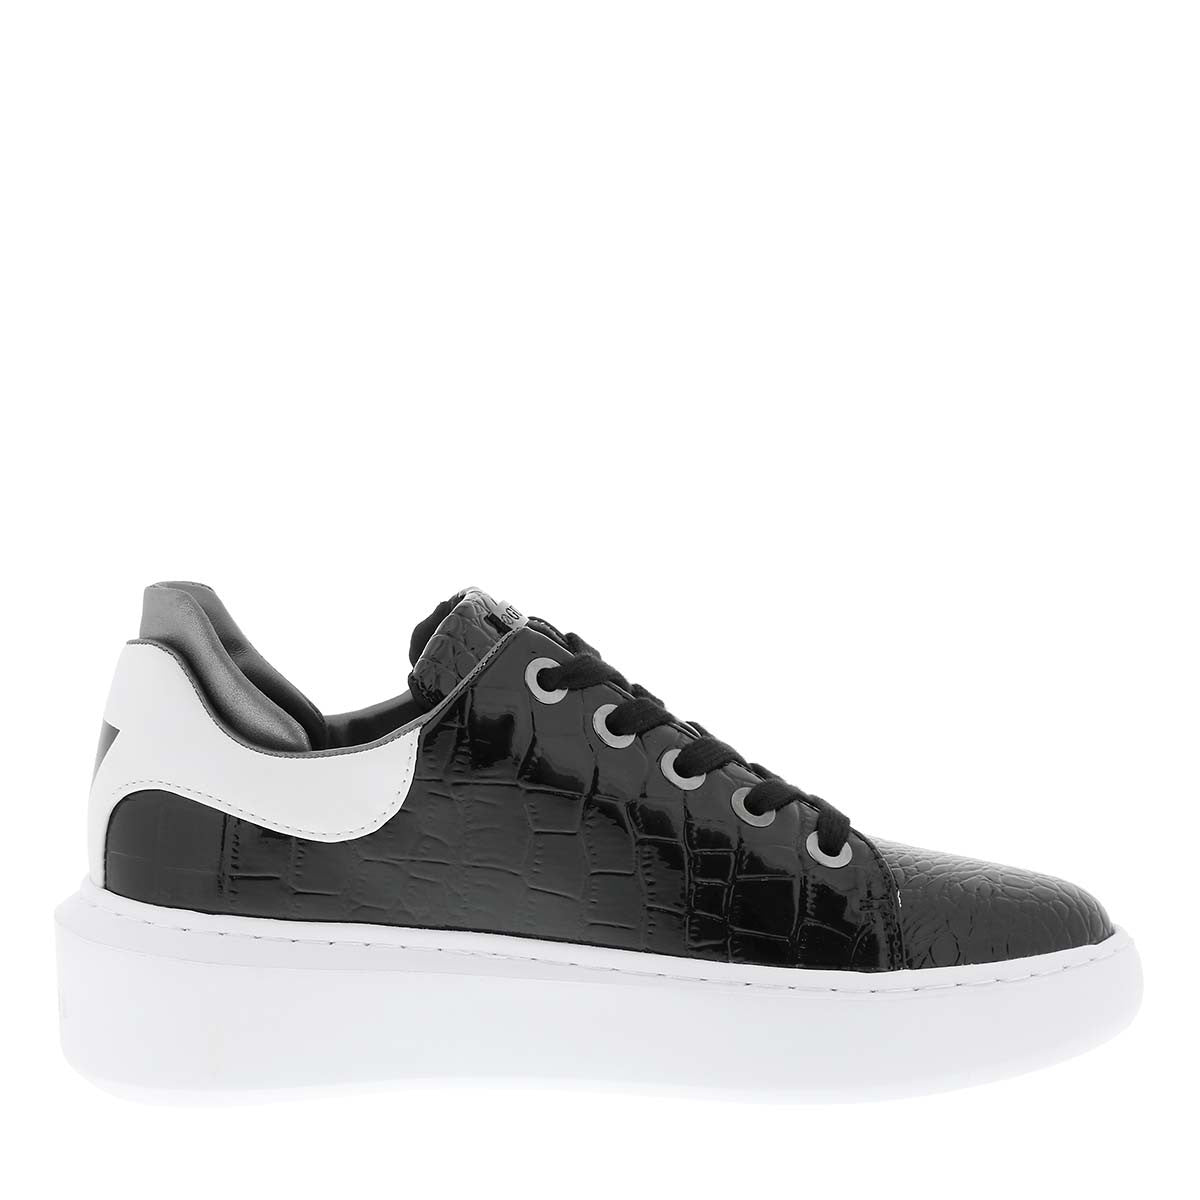 Guess Braylin black patent trainer